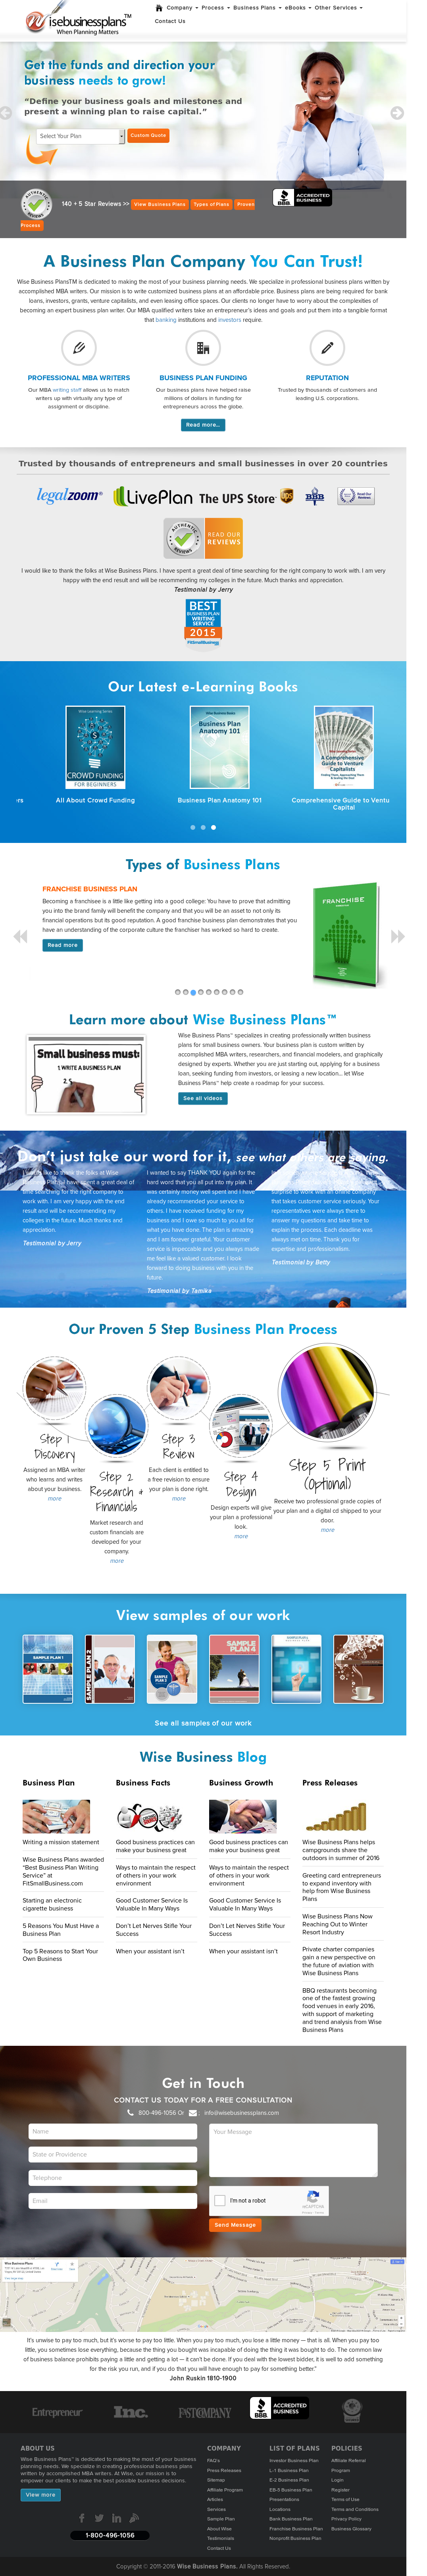 Wise Business Plans Competitors, Revenue and Employees